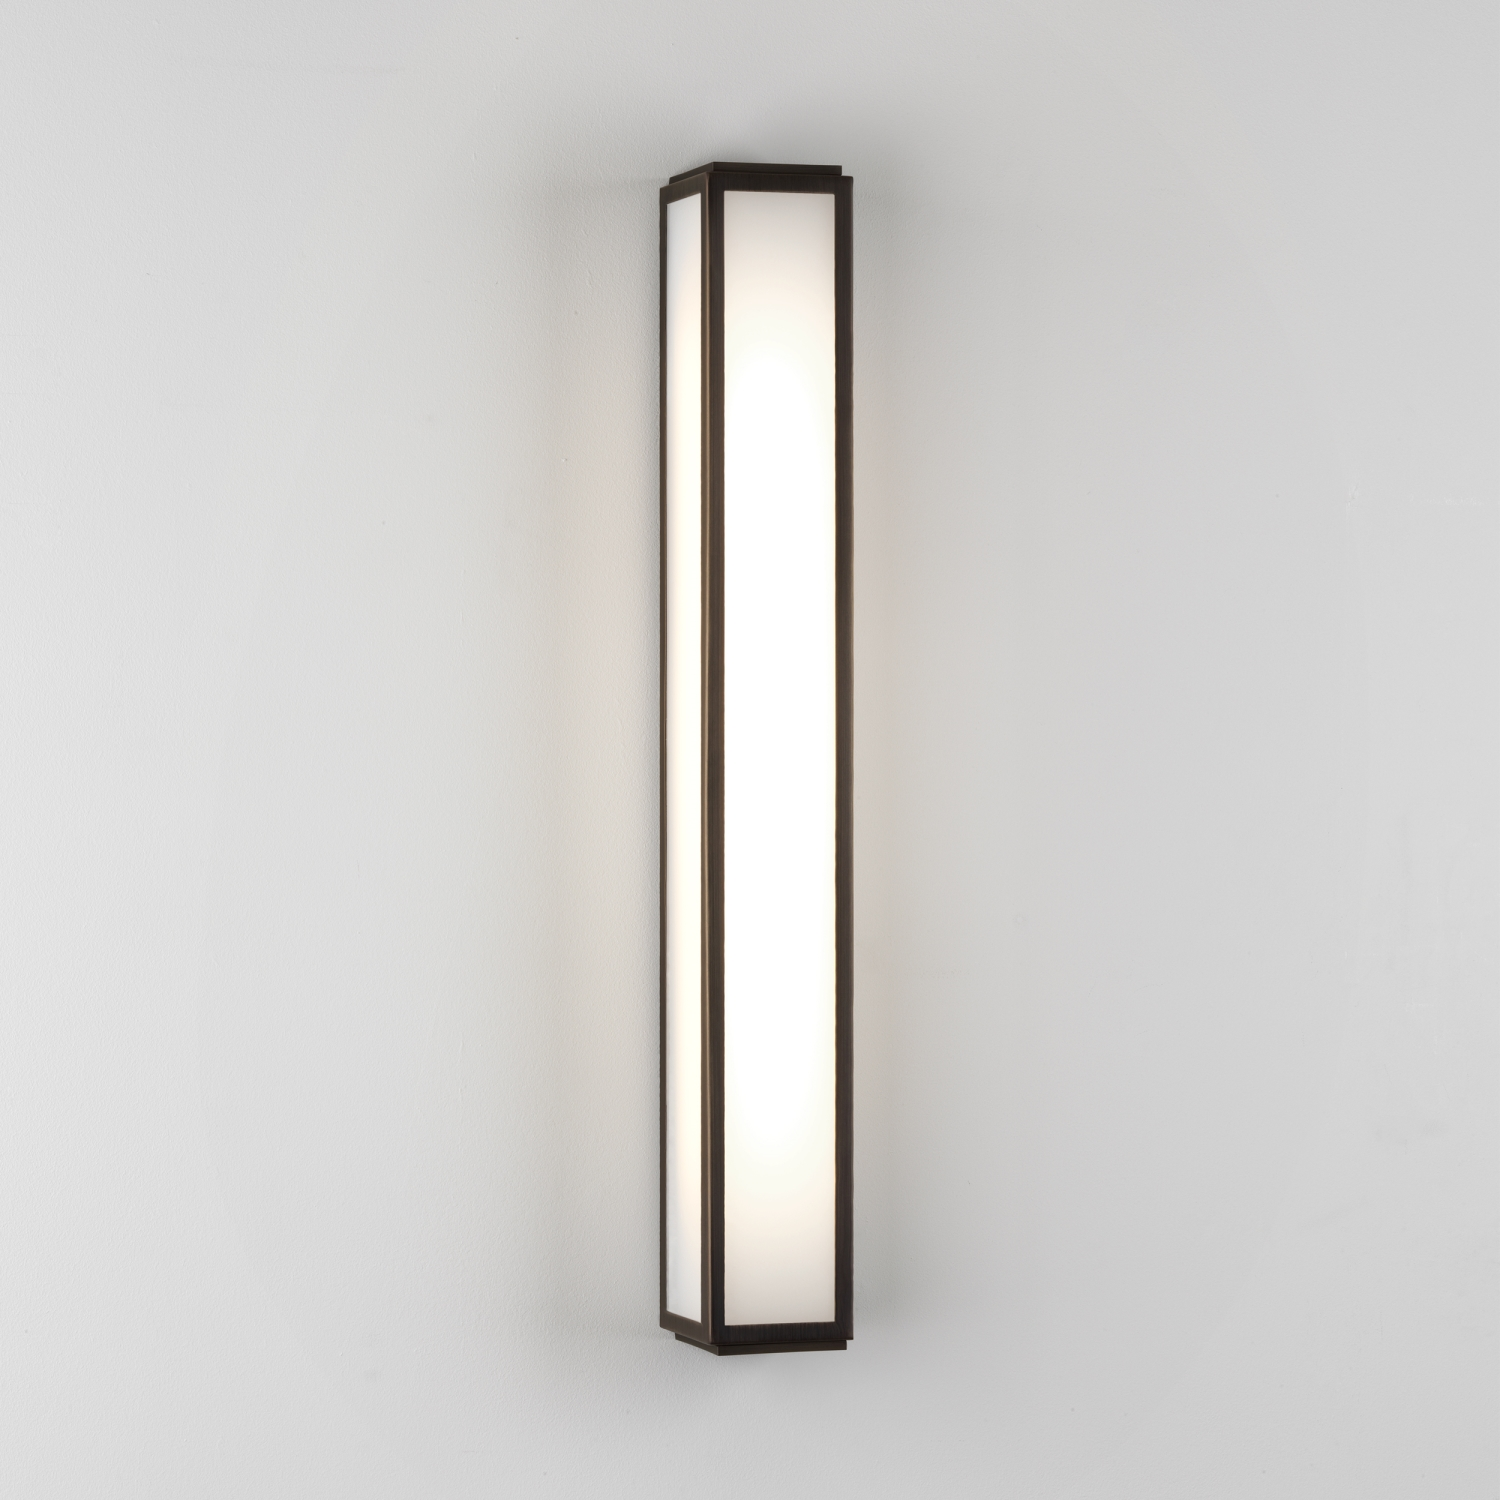 ASTRO Mashiko 600 Bathroom fluorescent wall light 24W T5 (not supplied)